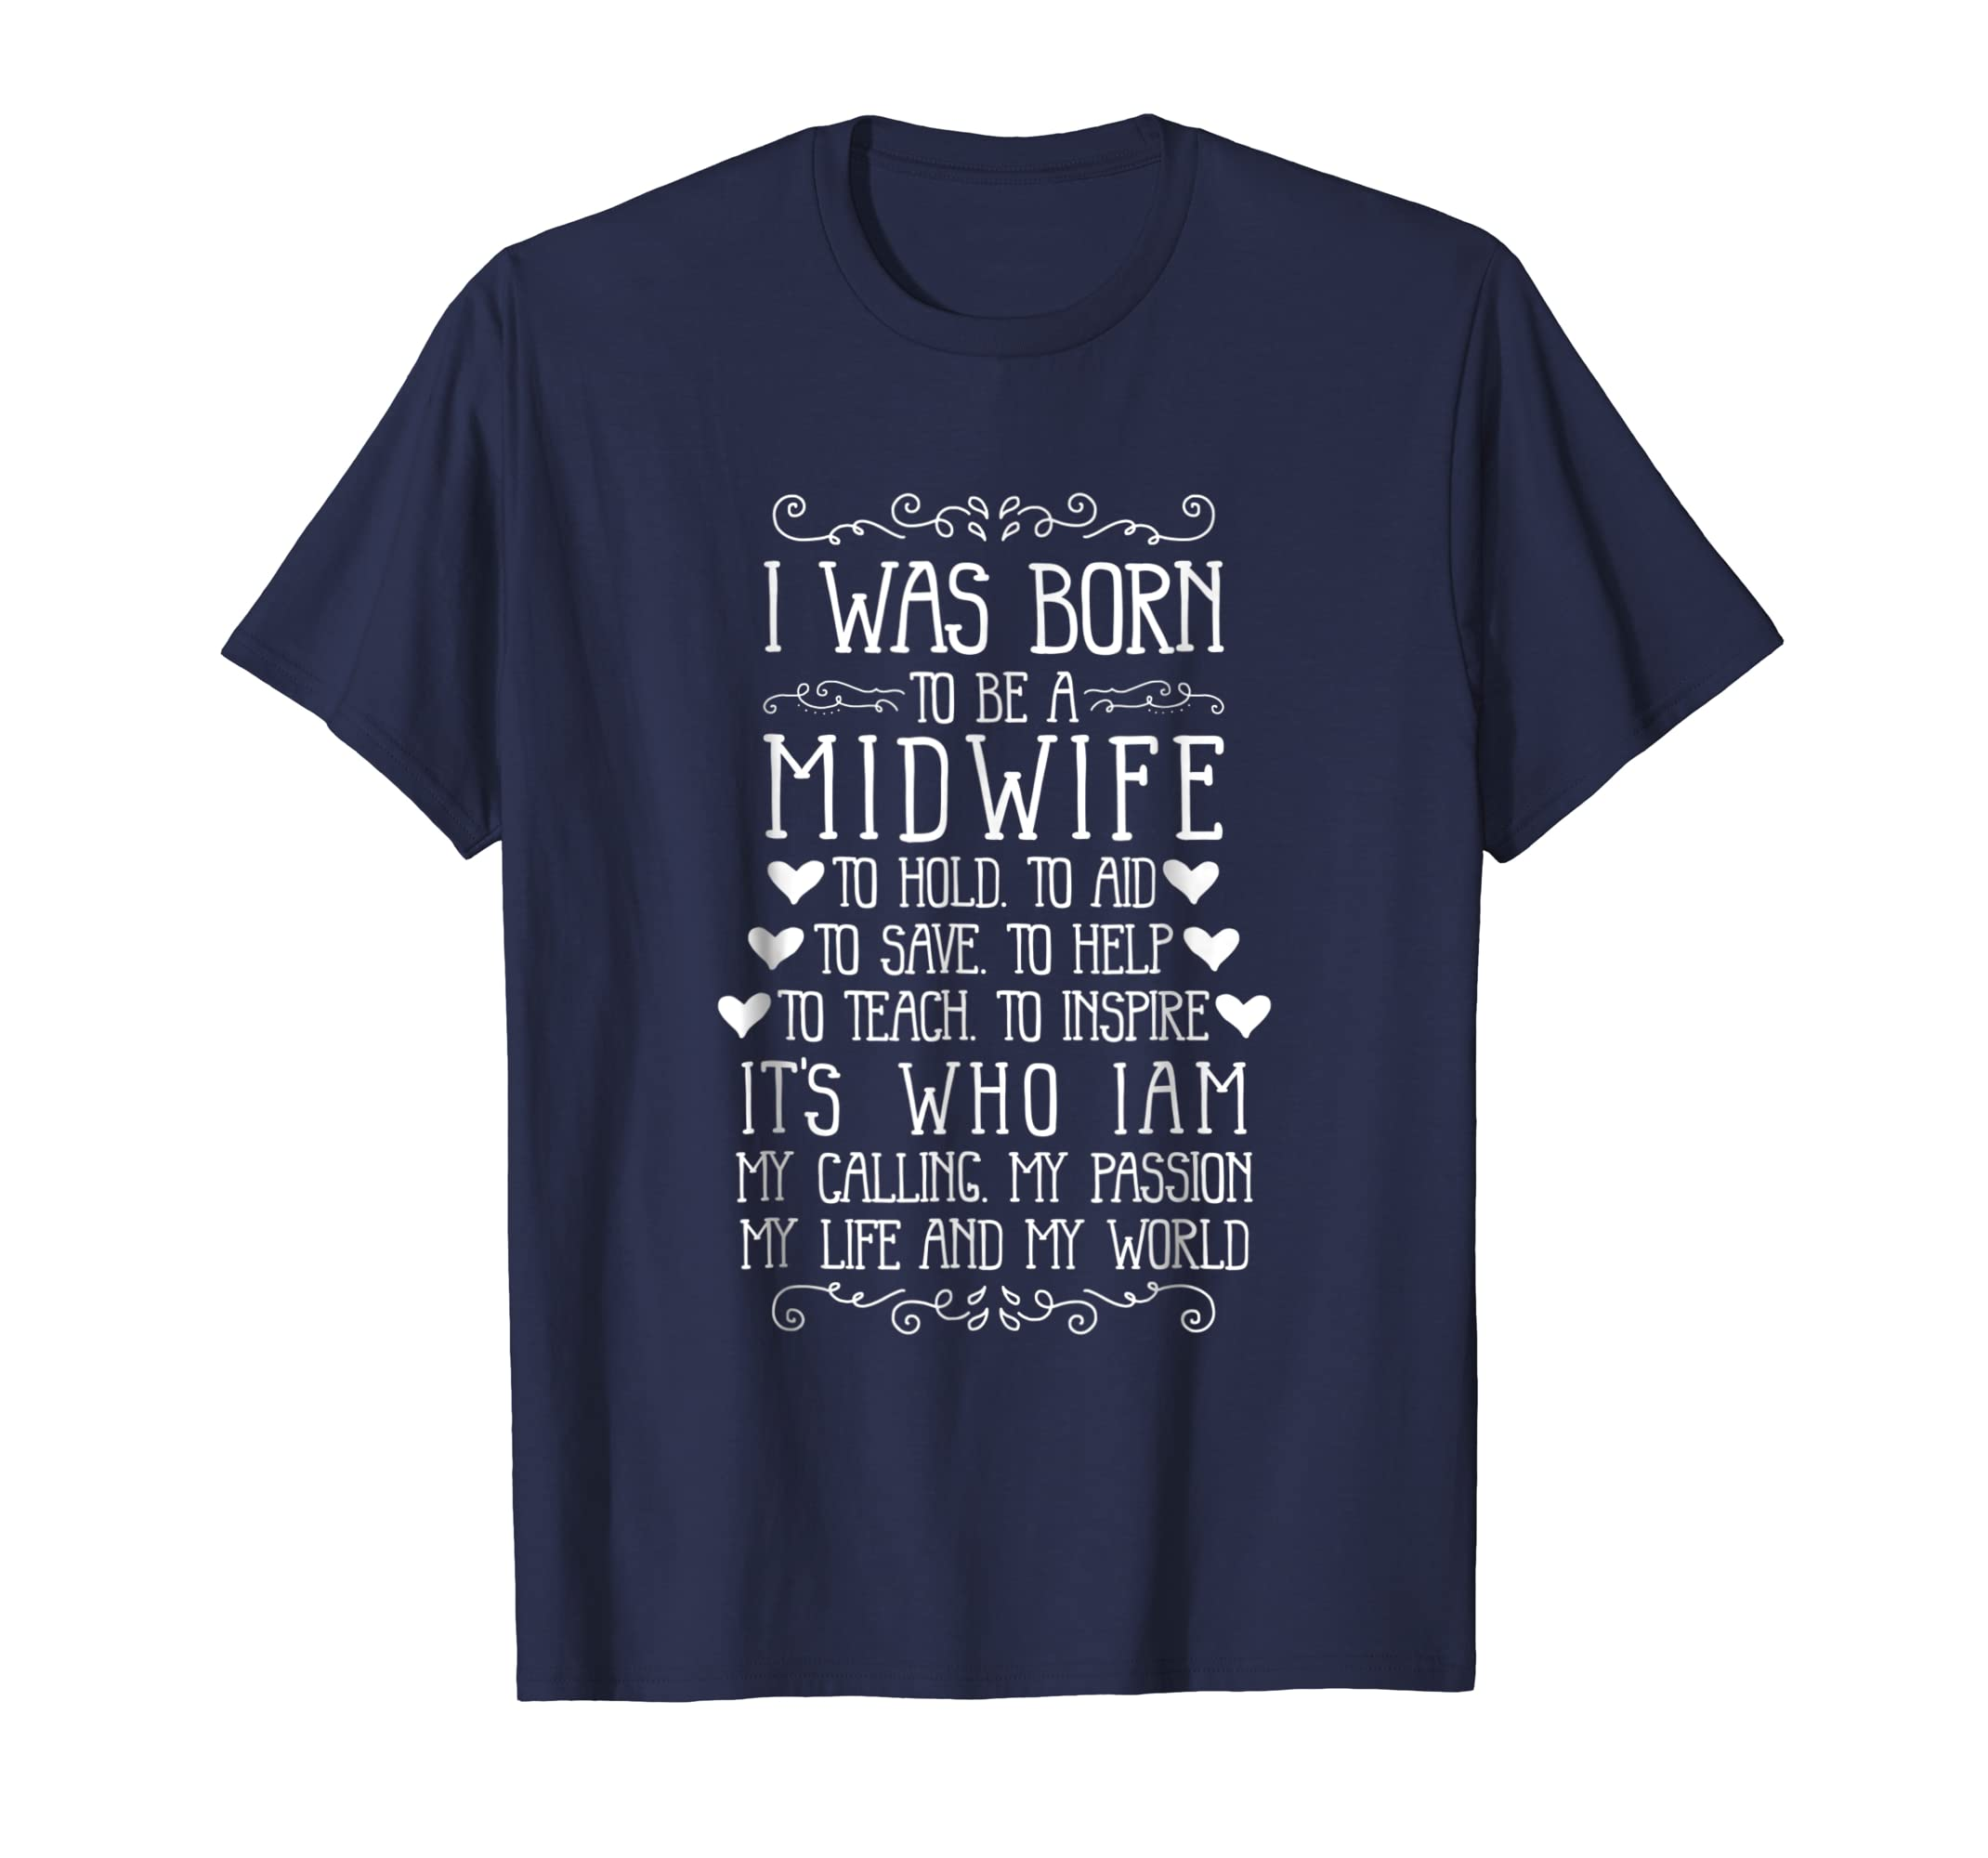 'I was born to be a Midwife' Midwives Day Midwifery Shirt-Teesml